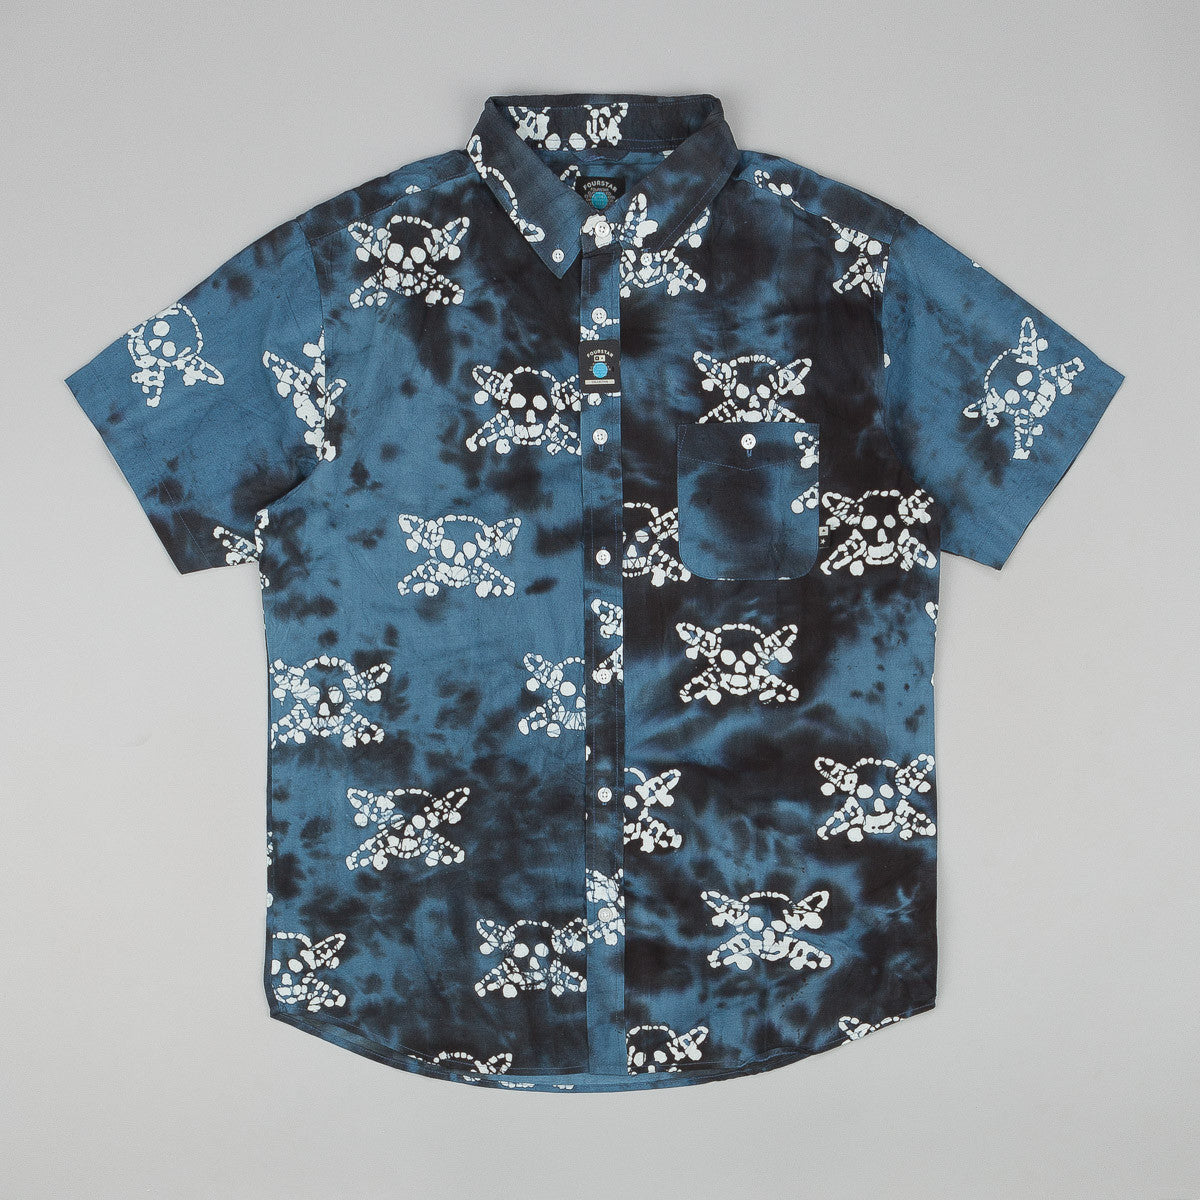 Fourstar Pirate Batik Shirt Indigo